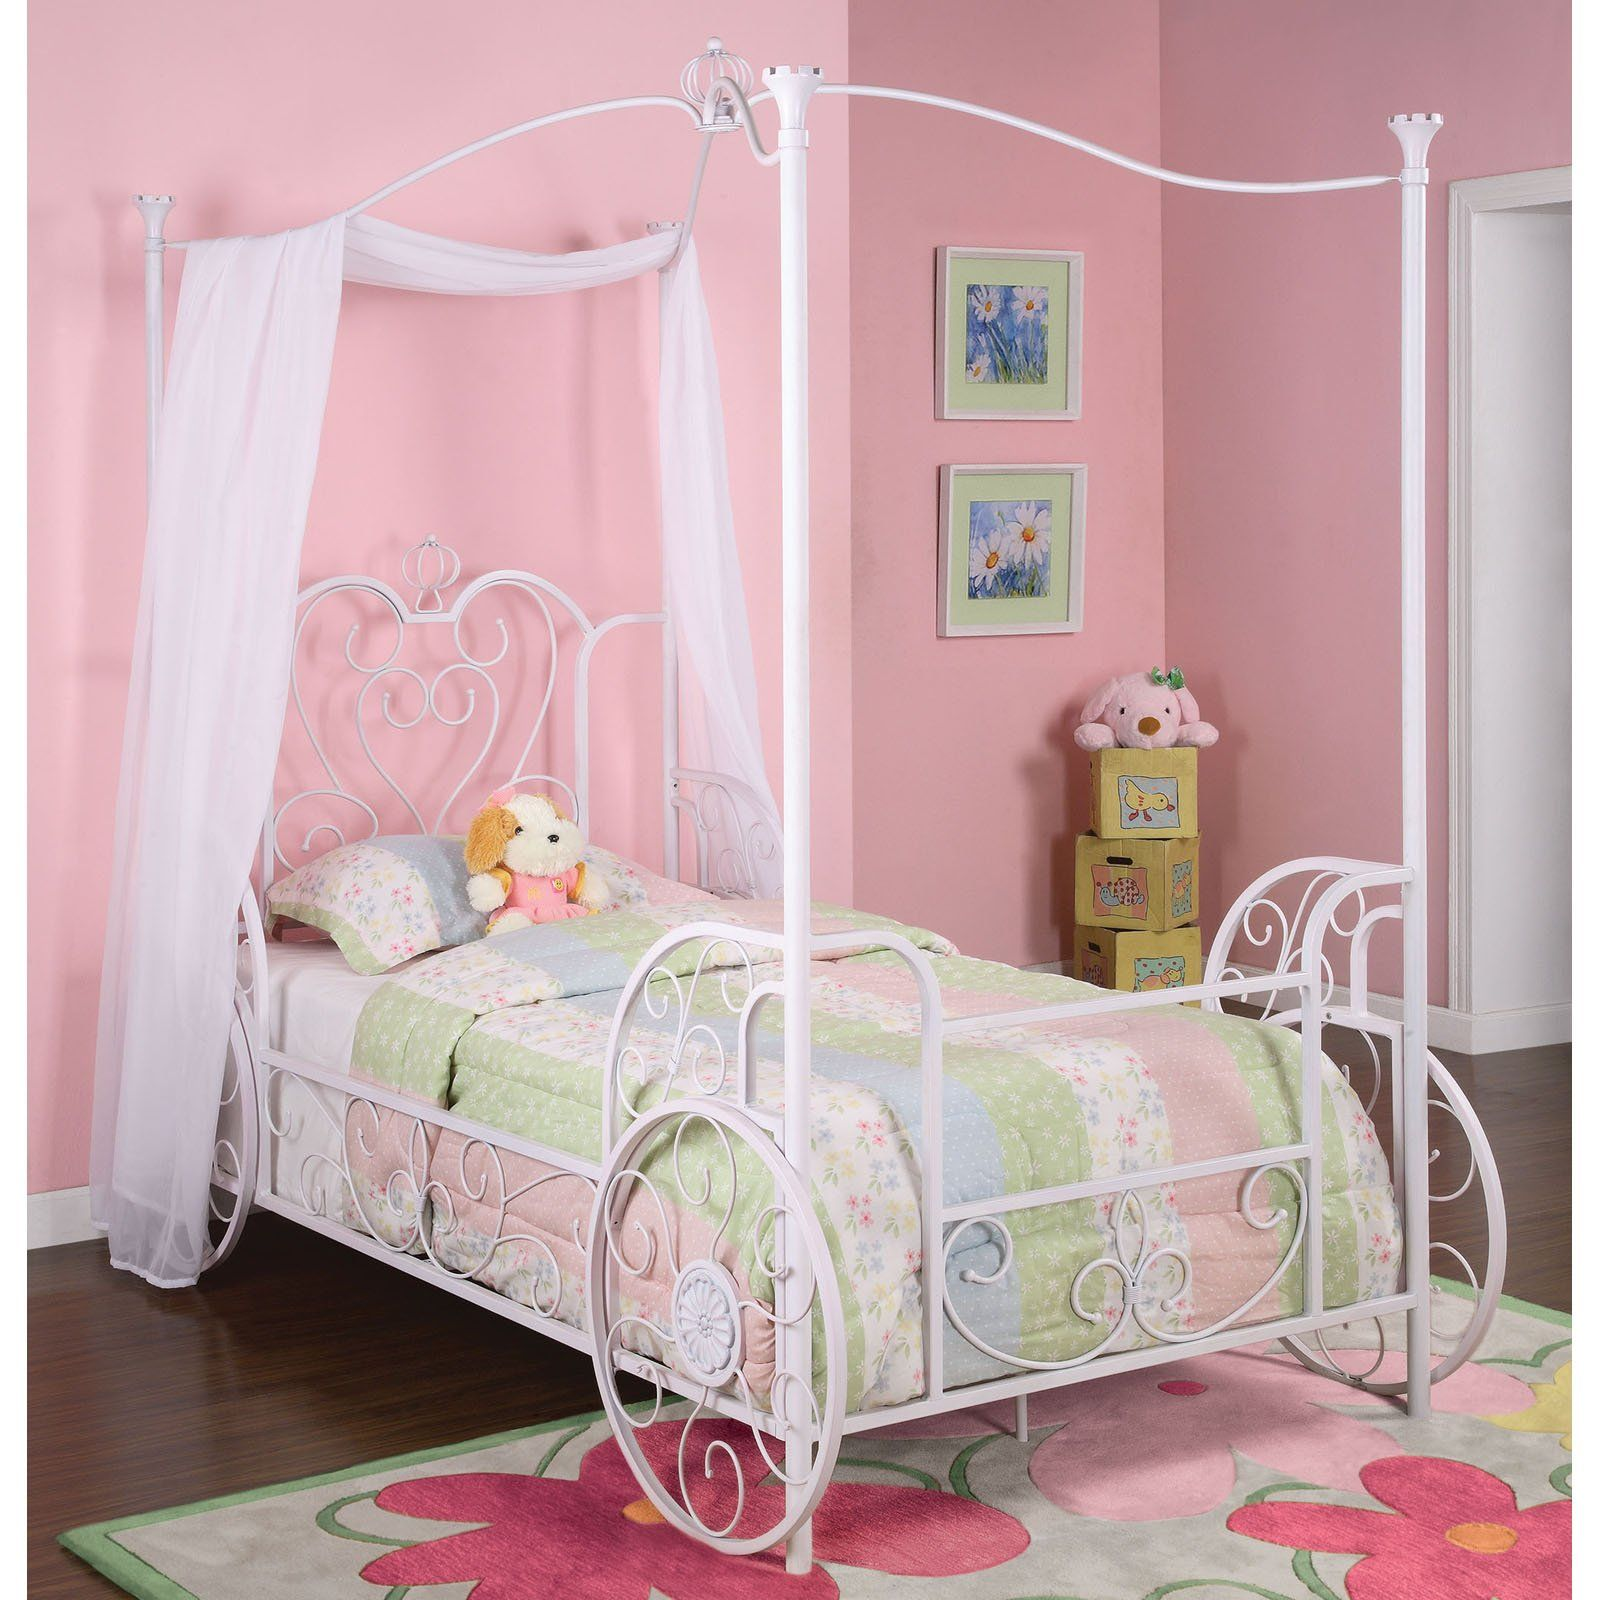 Fit for a princess the Powell Furniture - Princess Emily  Shabby Chic White  Carriage Canopy Twin Size Bed is finished in a  Shabby Chic White  with pink ... : girls princess canopy bed - memphite.com